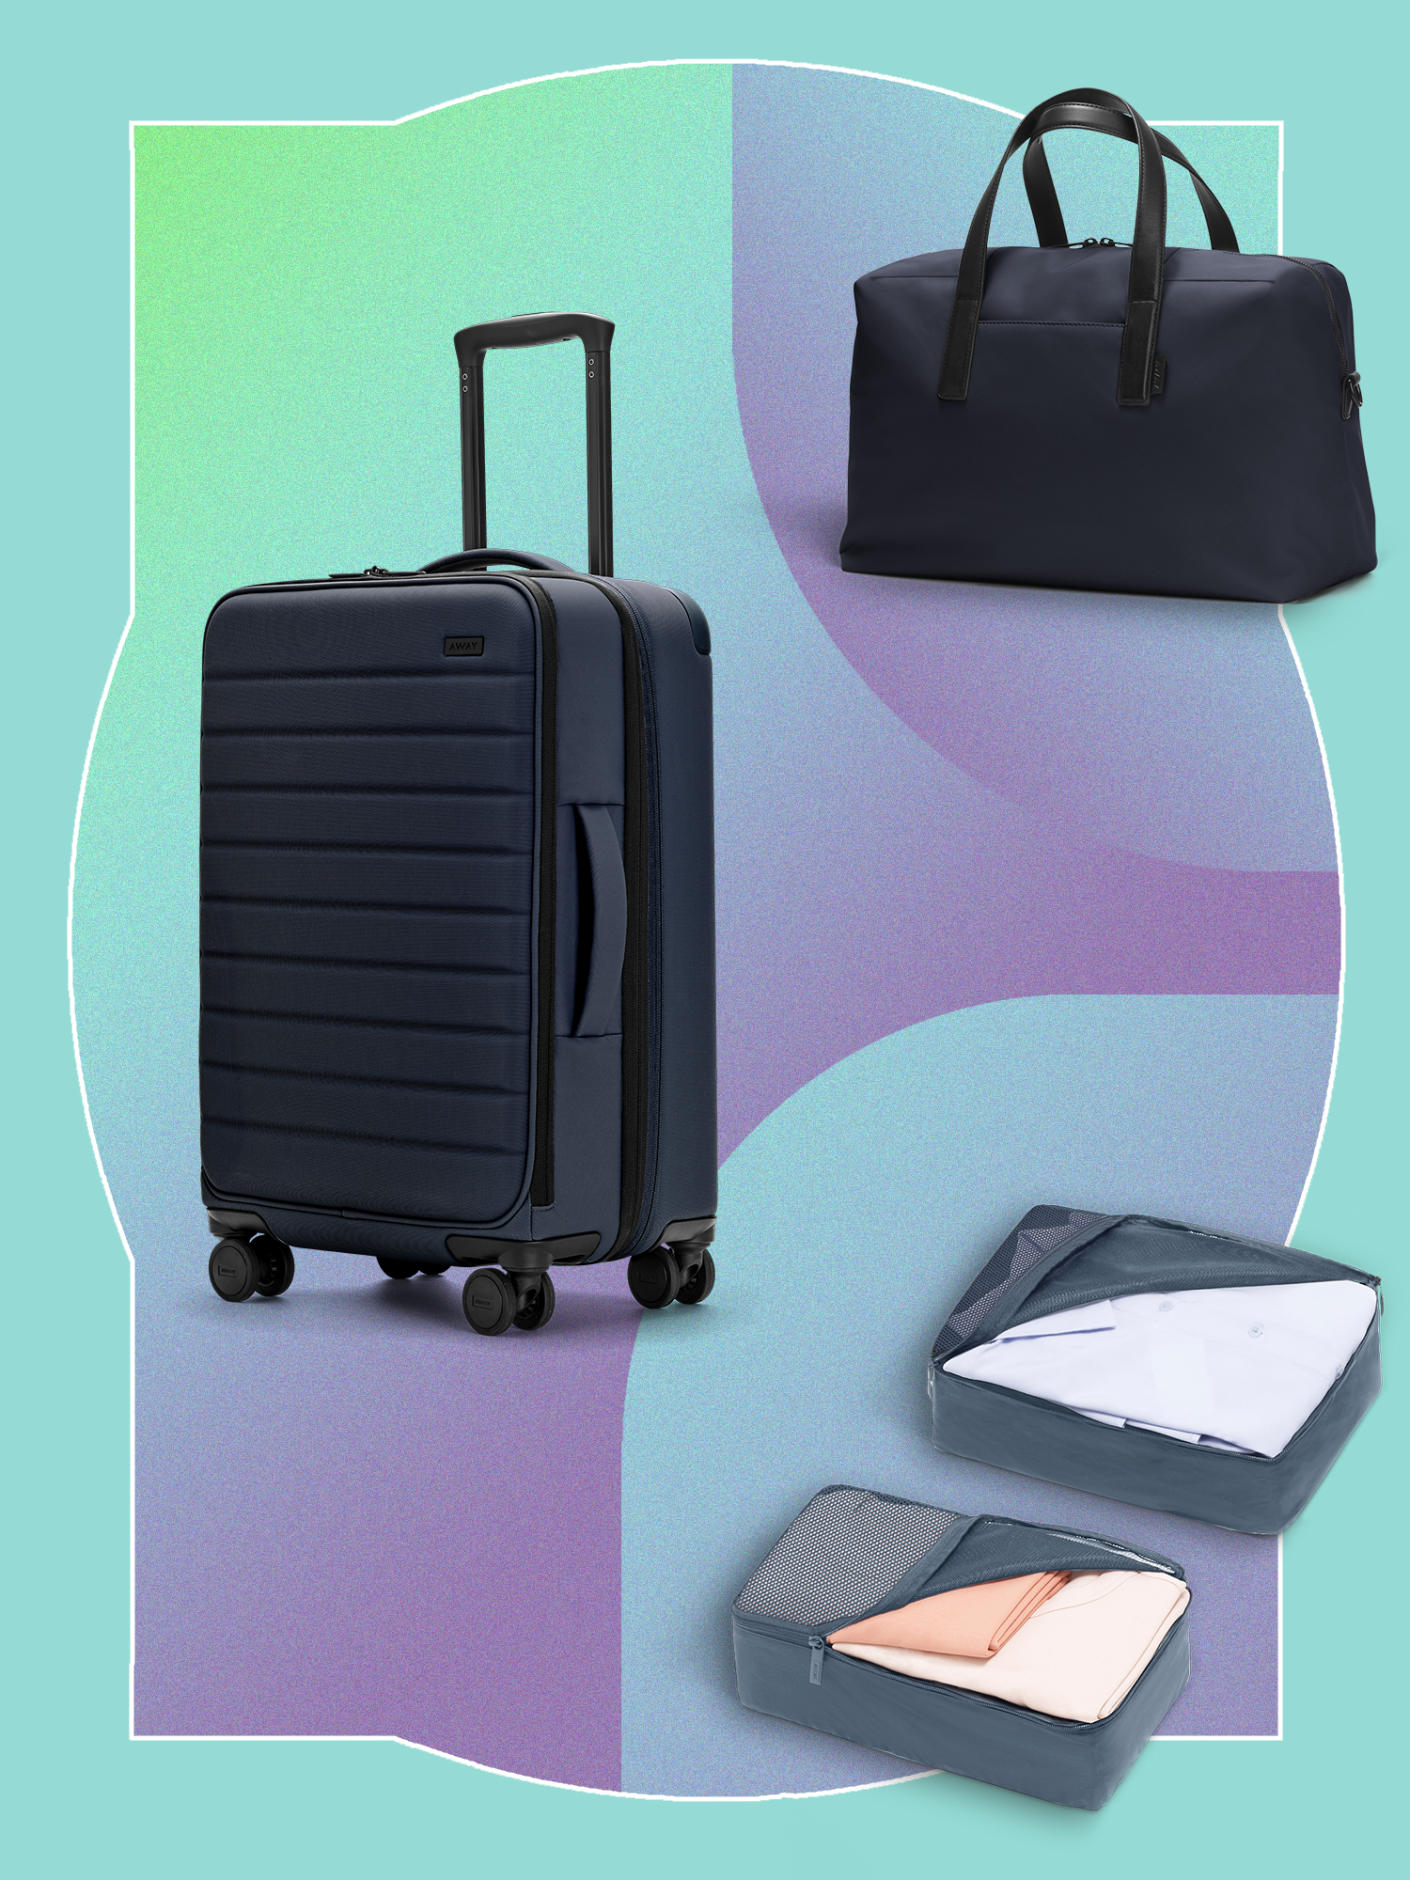 The Expandable Bigger Carry-On in Navy, The Everywhere Bag in Navy nylon, The Insider Packing Cubes (Set of 4) in Coast